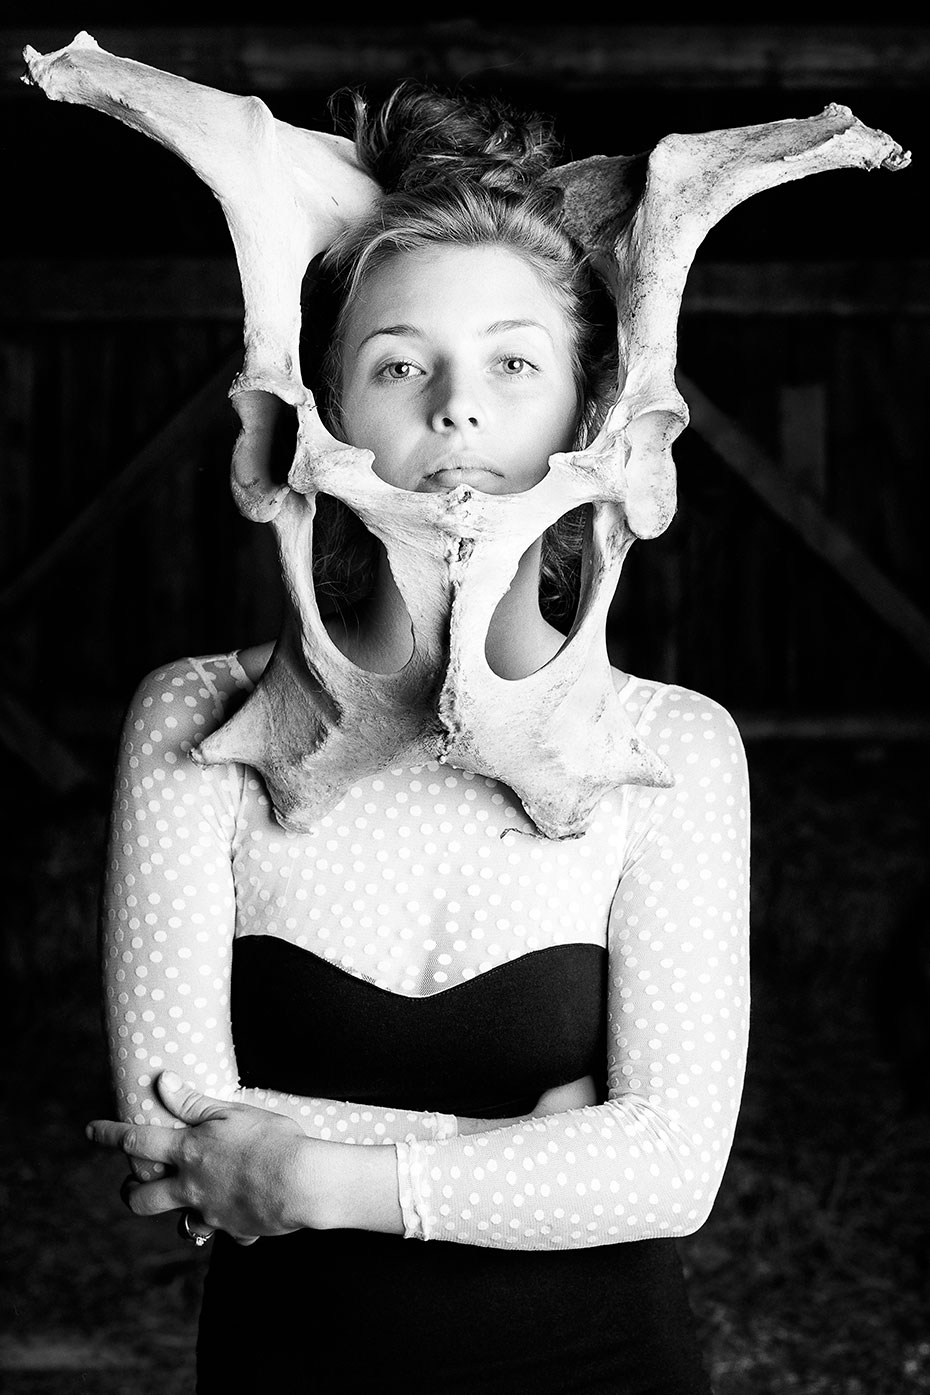 Brianna Fern with cow bone headpiece photographed by David Murcko